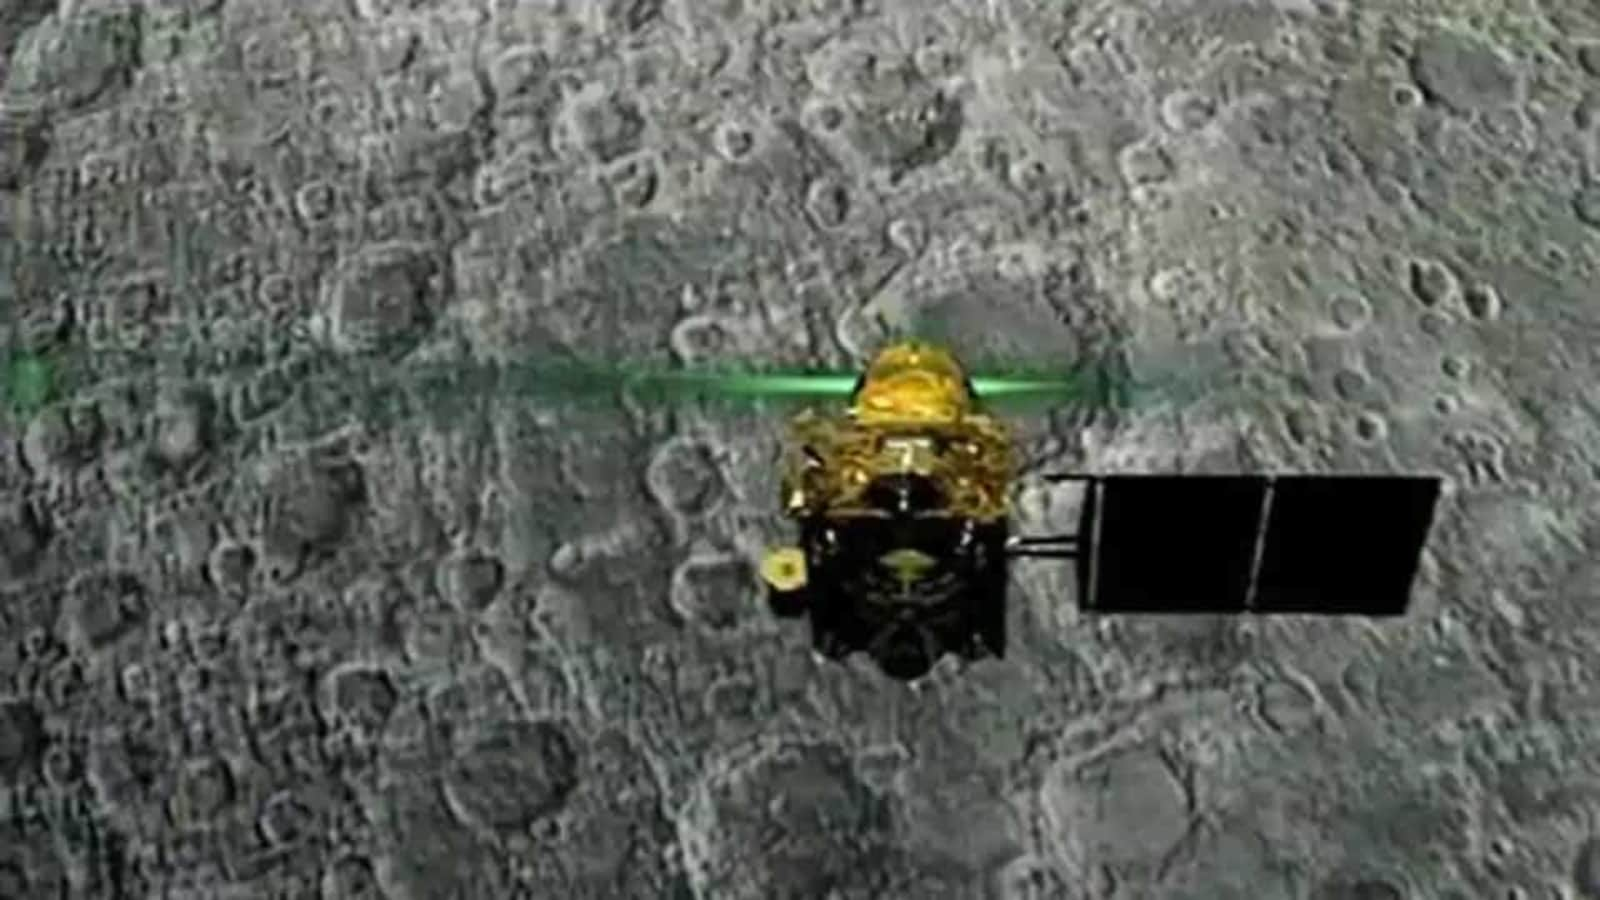 Envisaged for a year, Chandrayaan-2 orbiter likely to last for 7 years